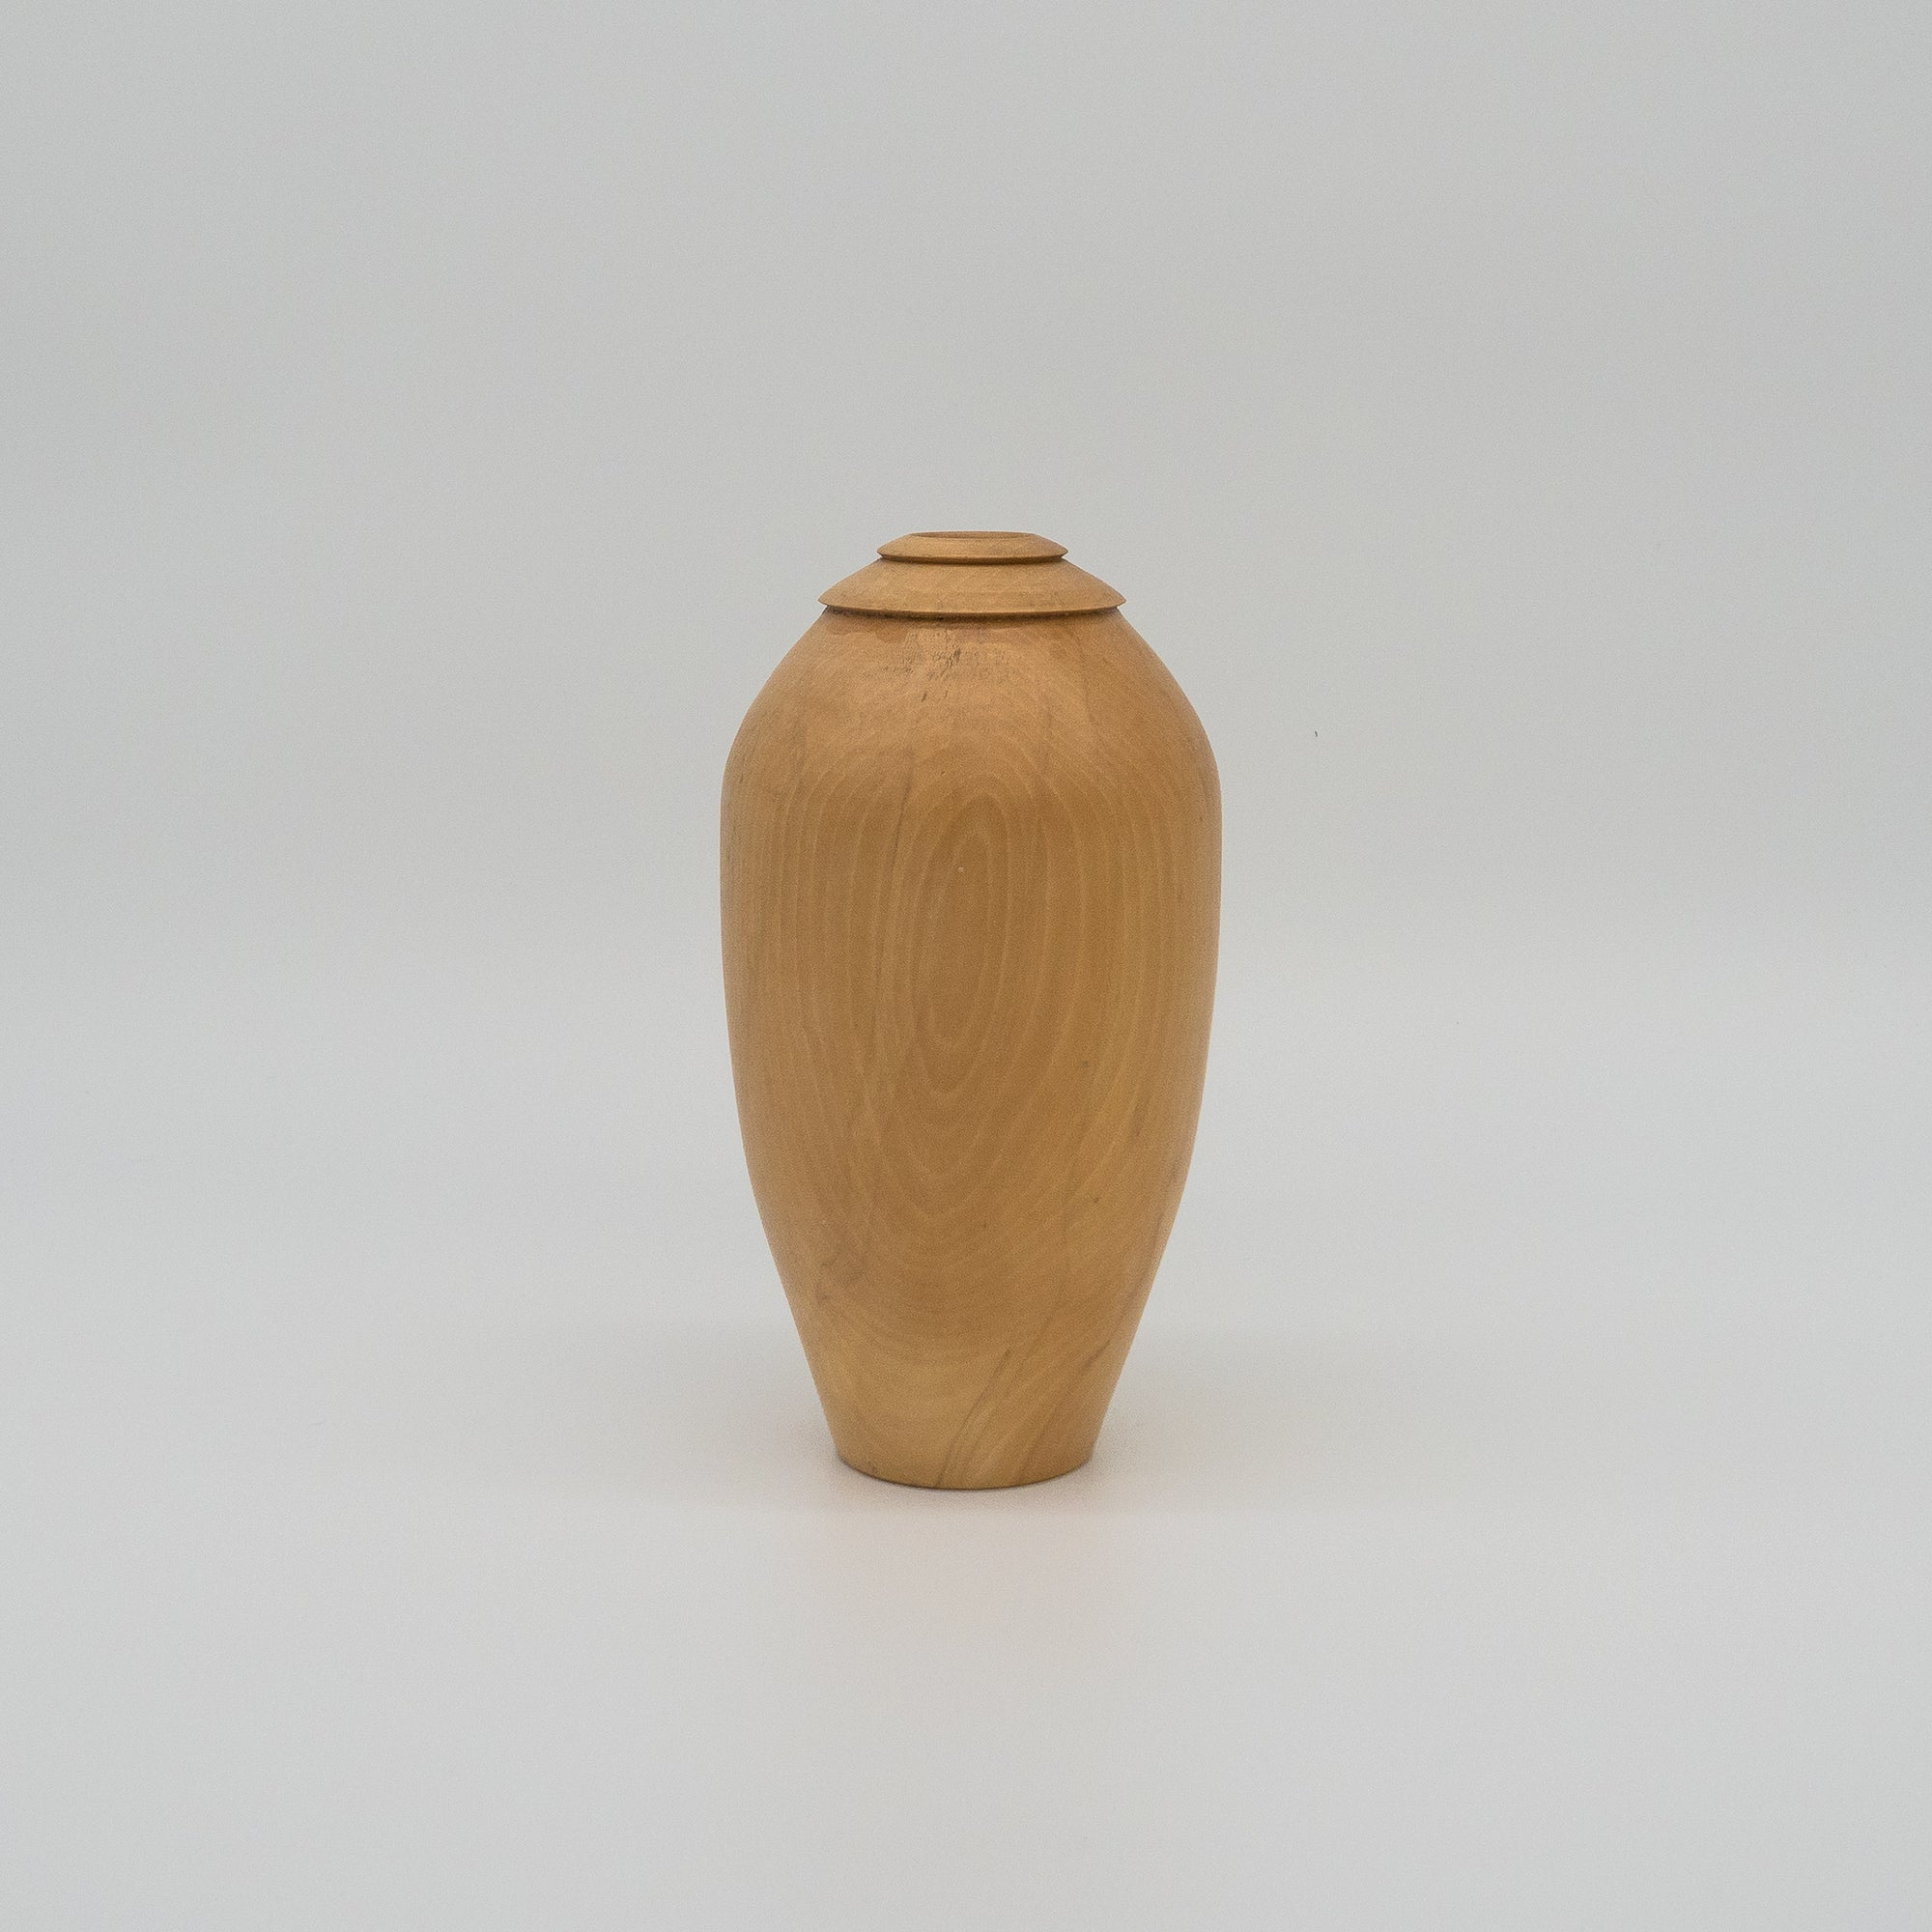 Hand Turned wooden flower vase